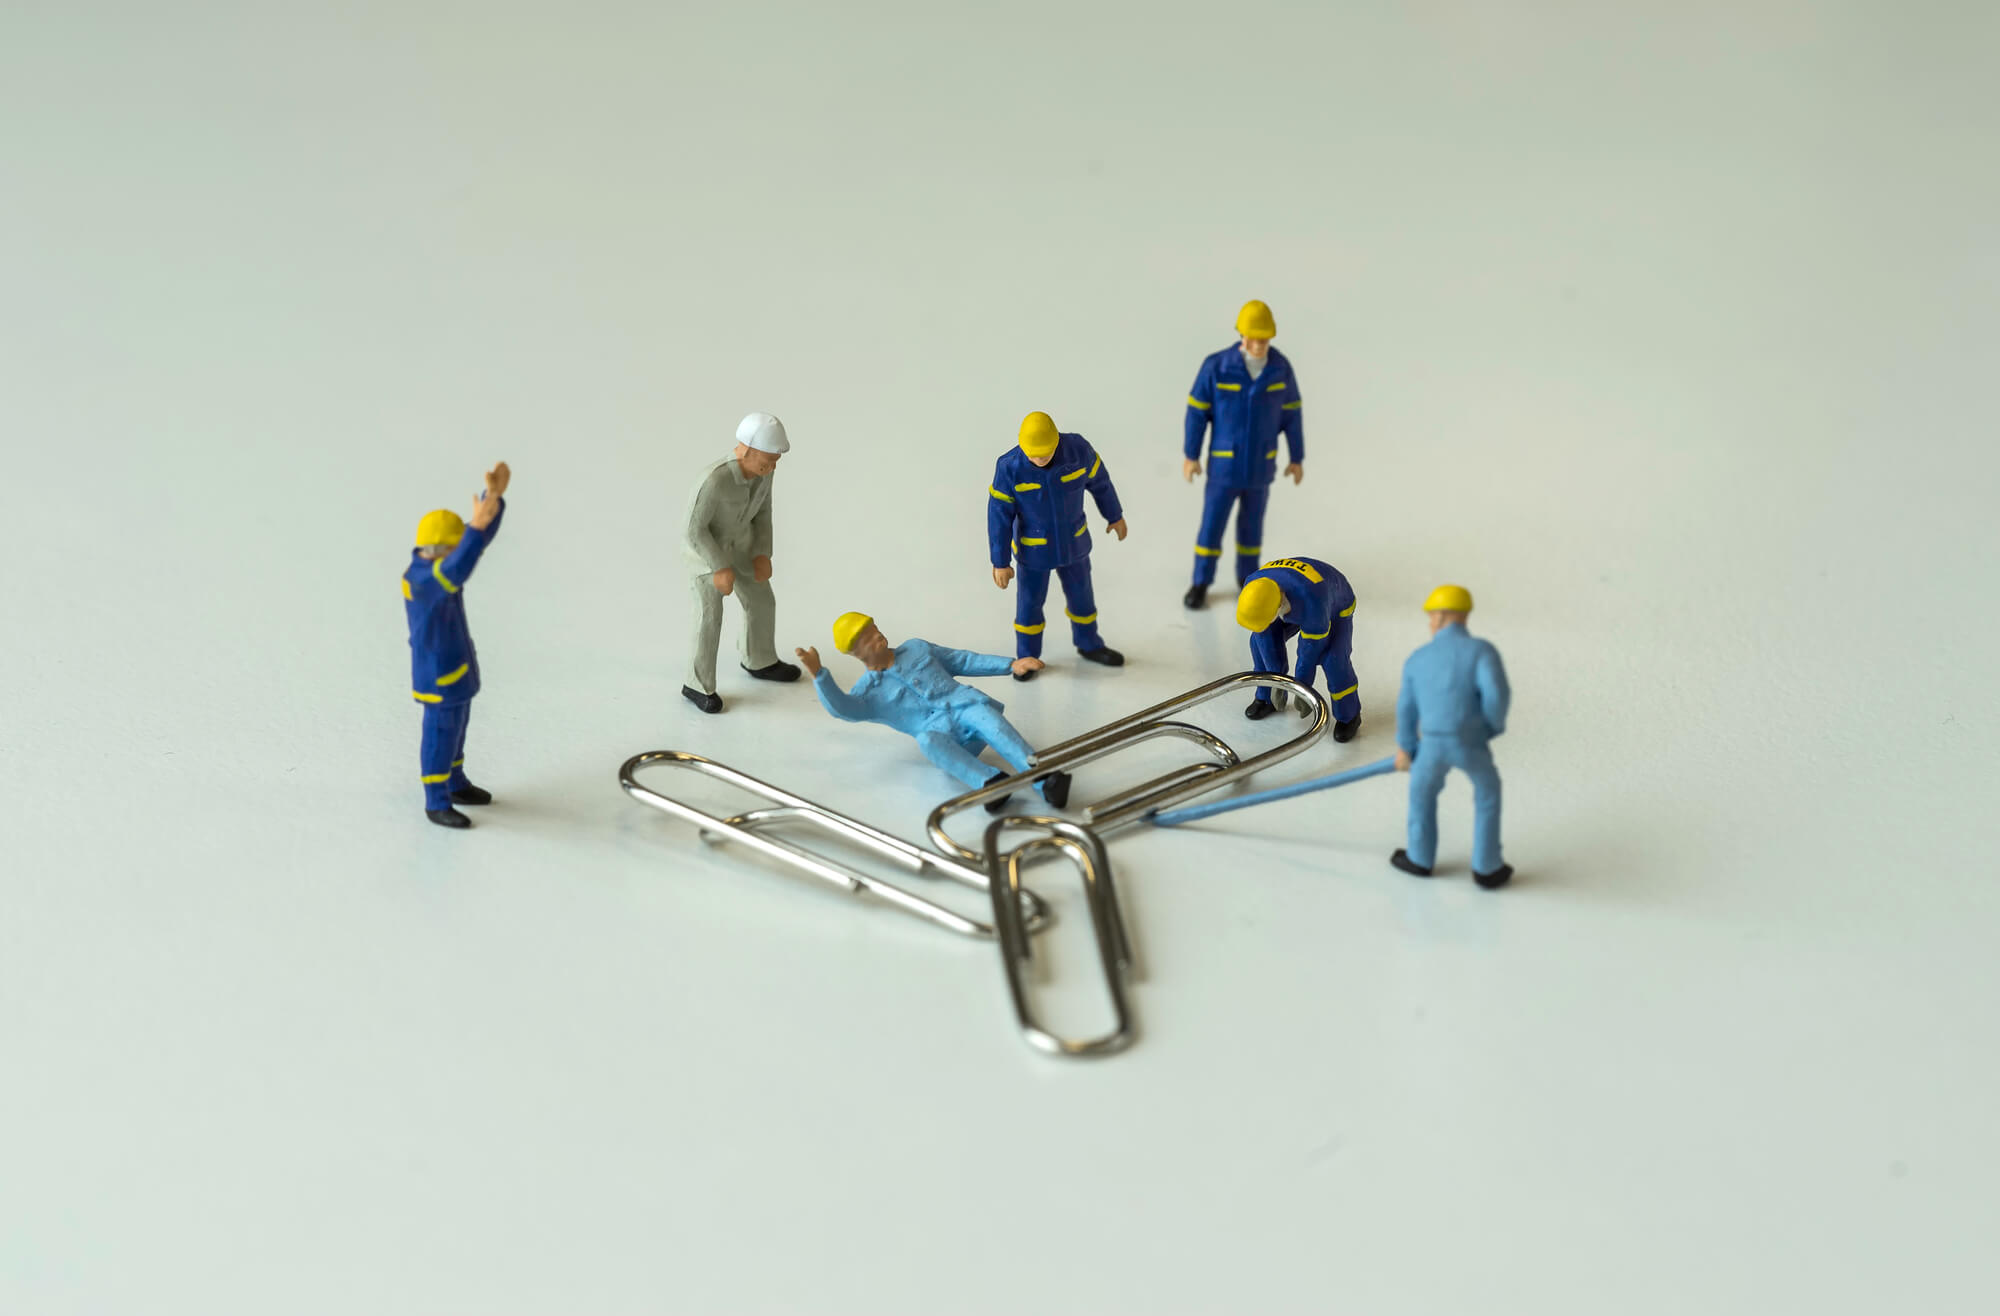 mini worker trapped under fallen paperclip